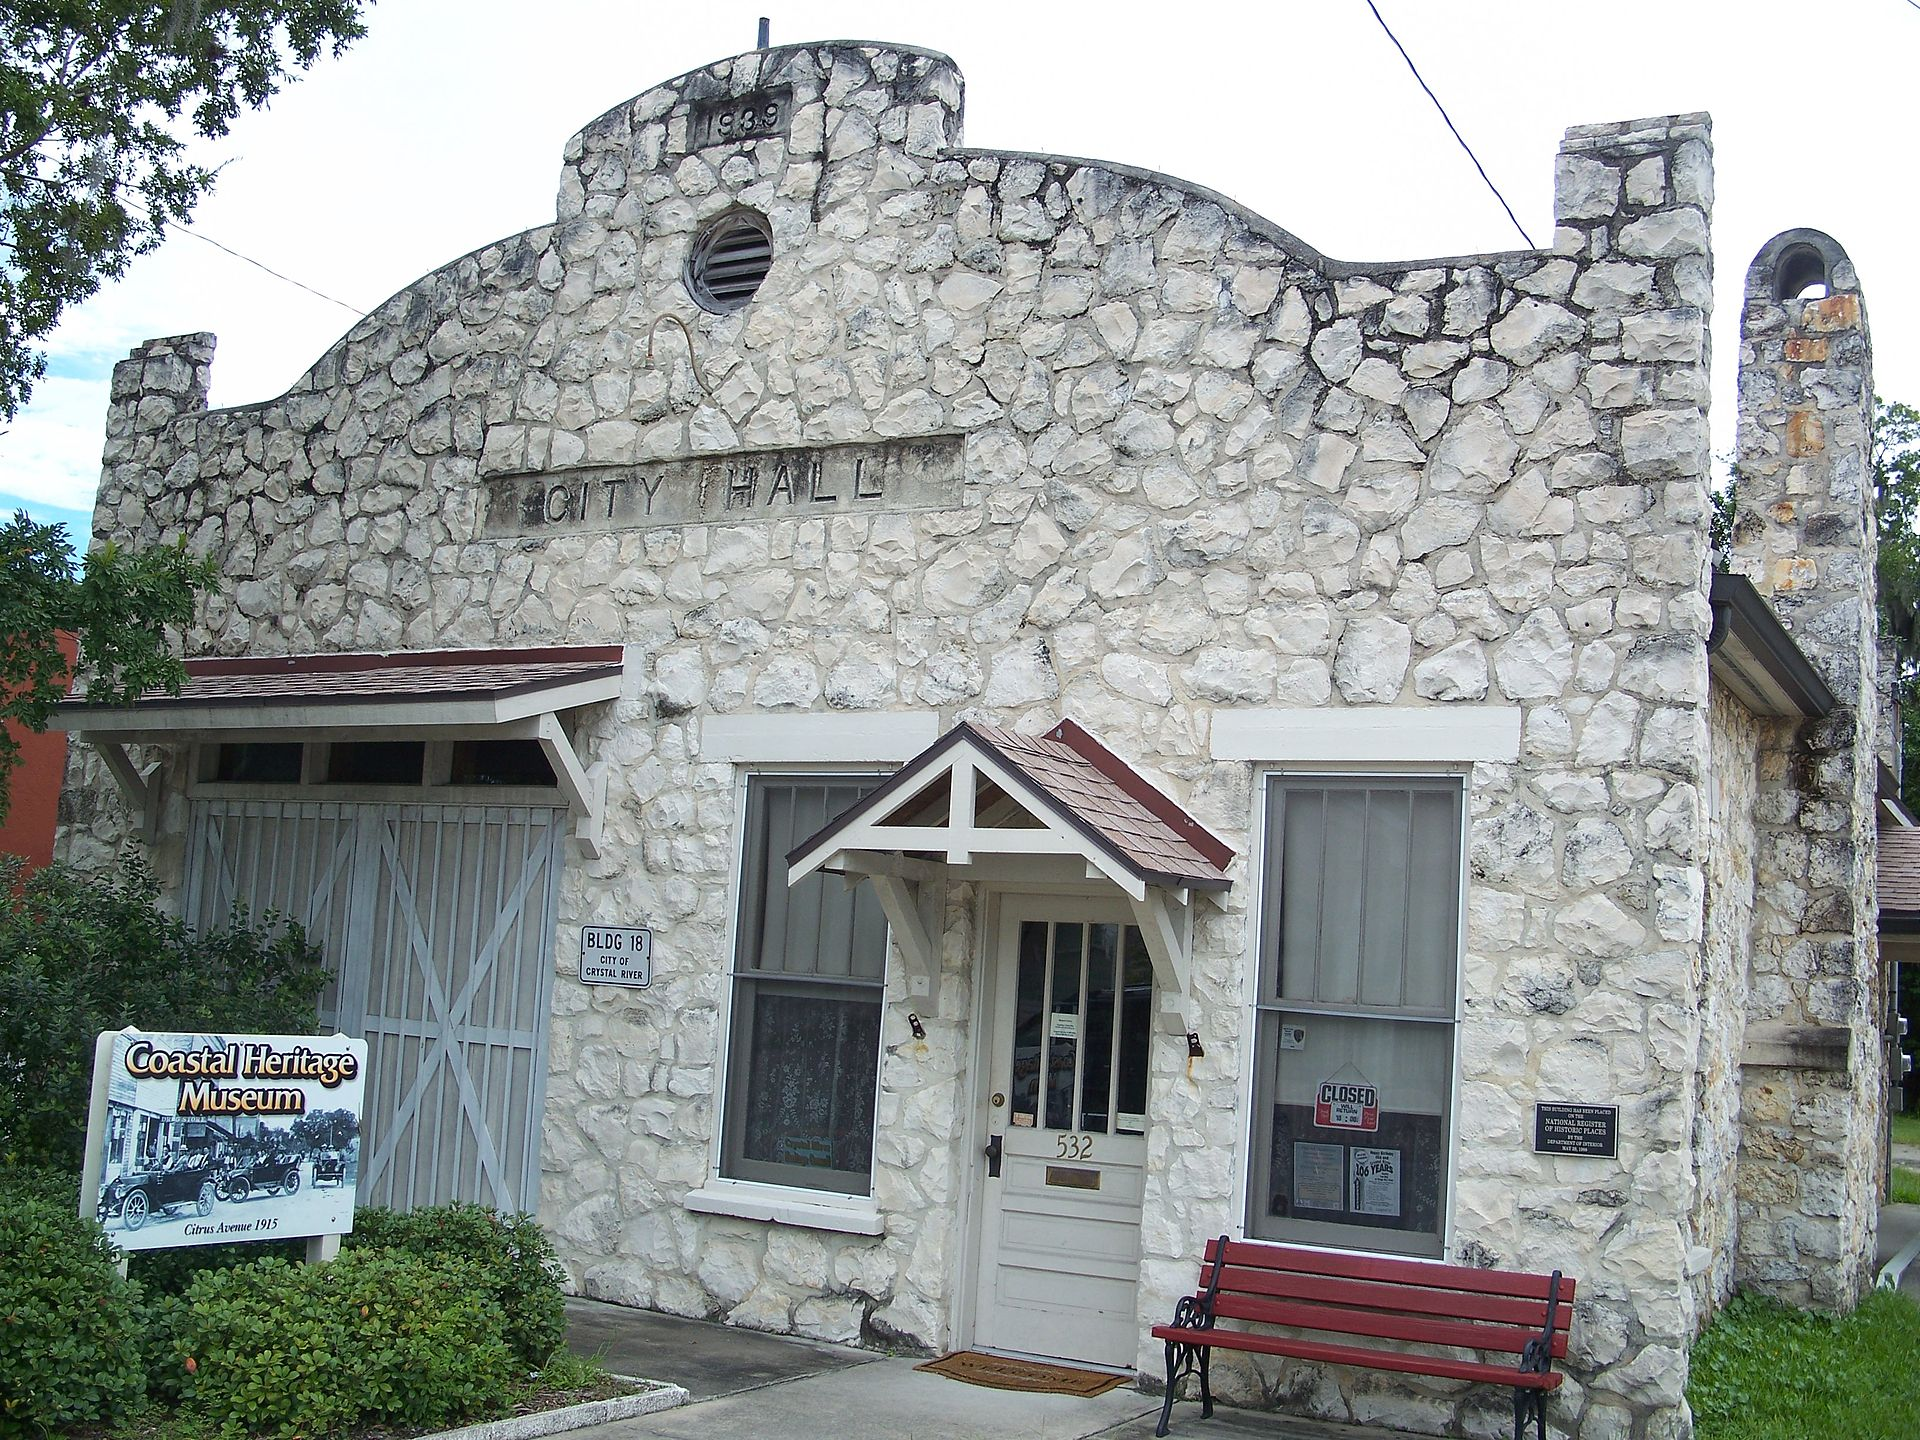 The Crystal River Old City Hall, now the Coastal Heritage Museum